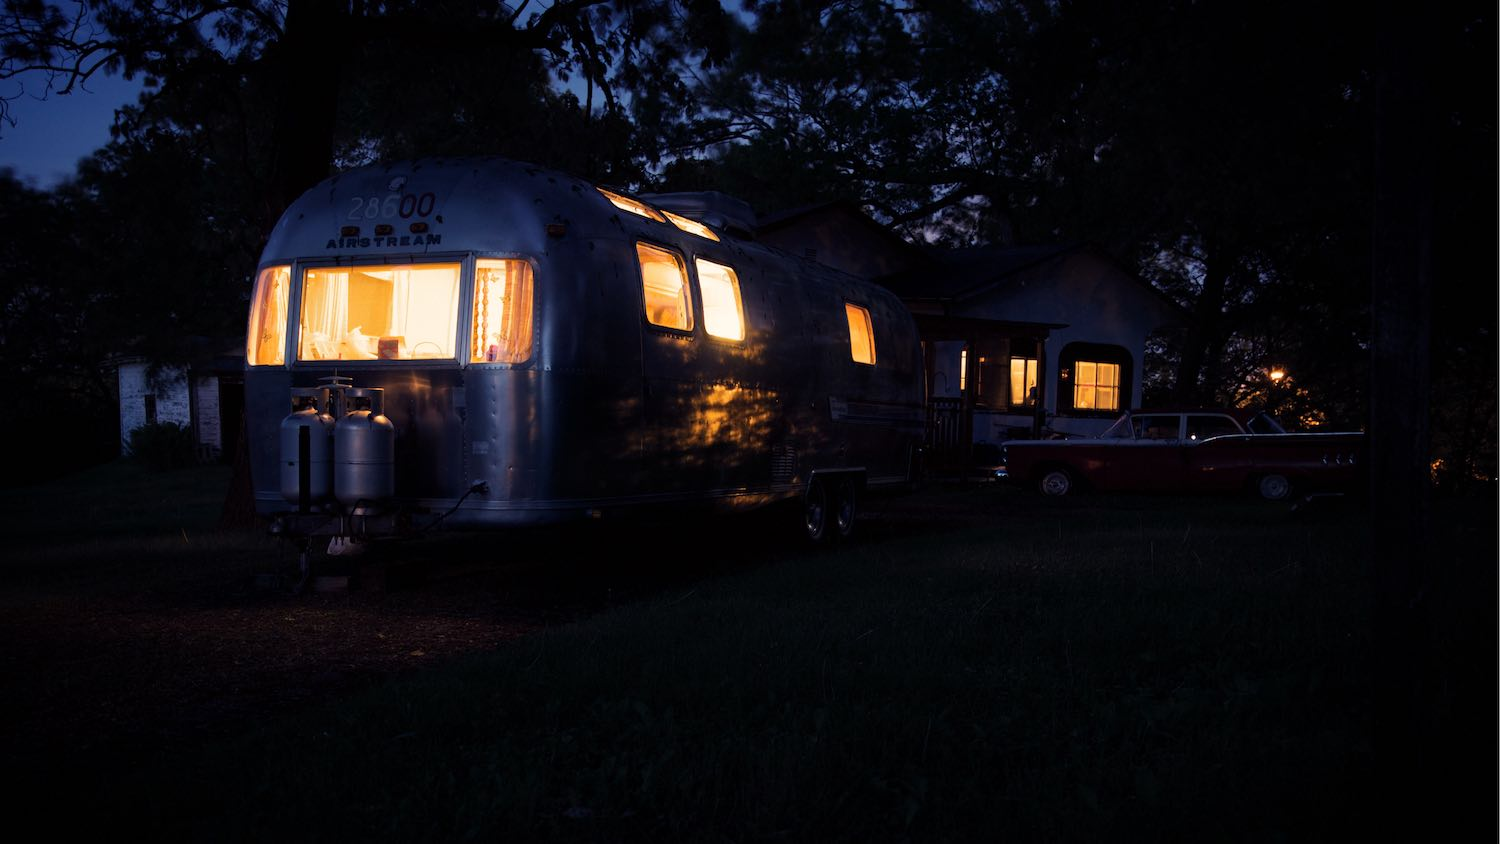 Our Airstream at night has a beautiful glow.